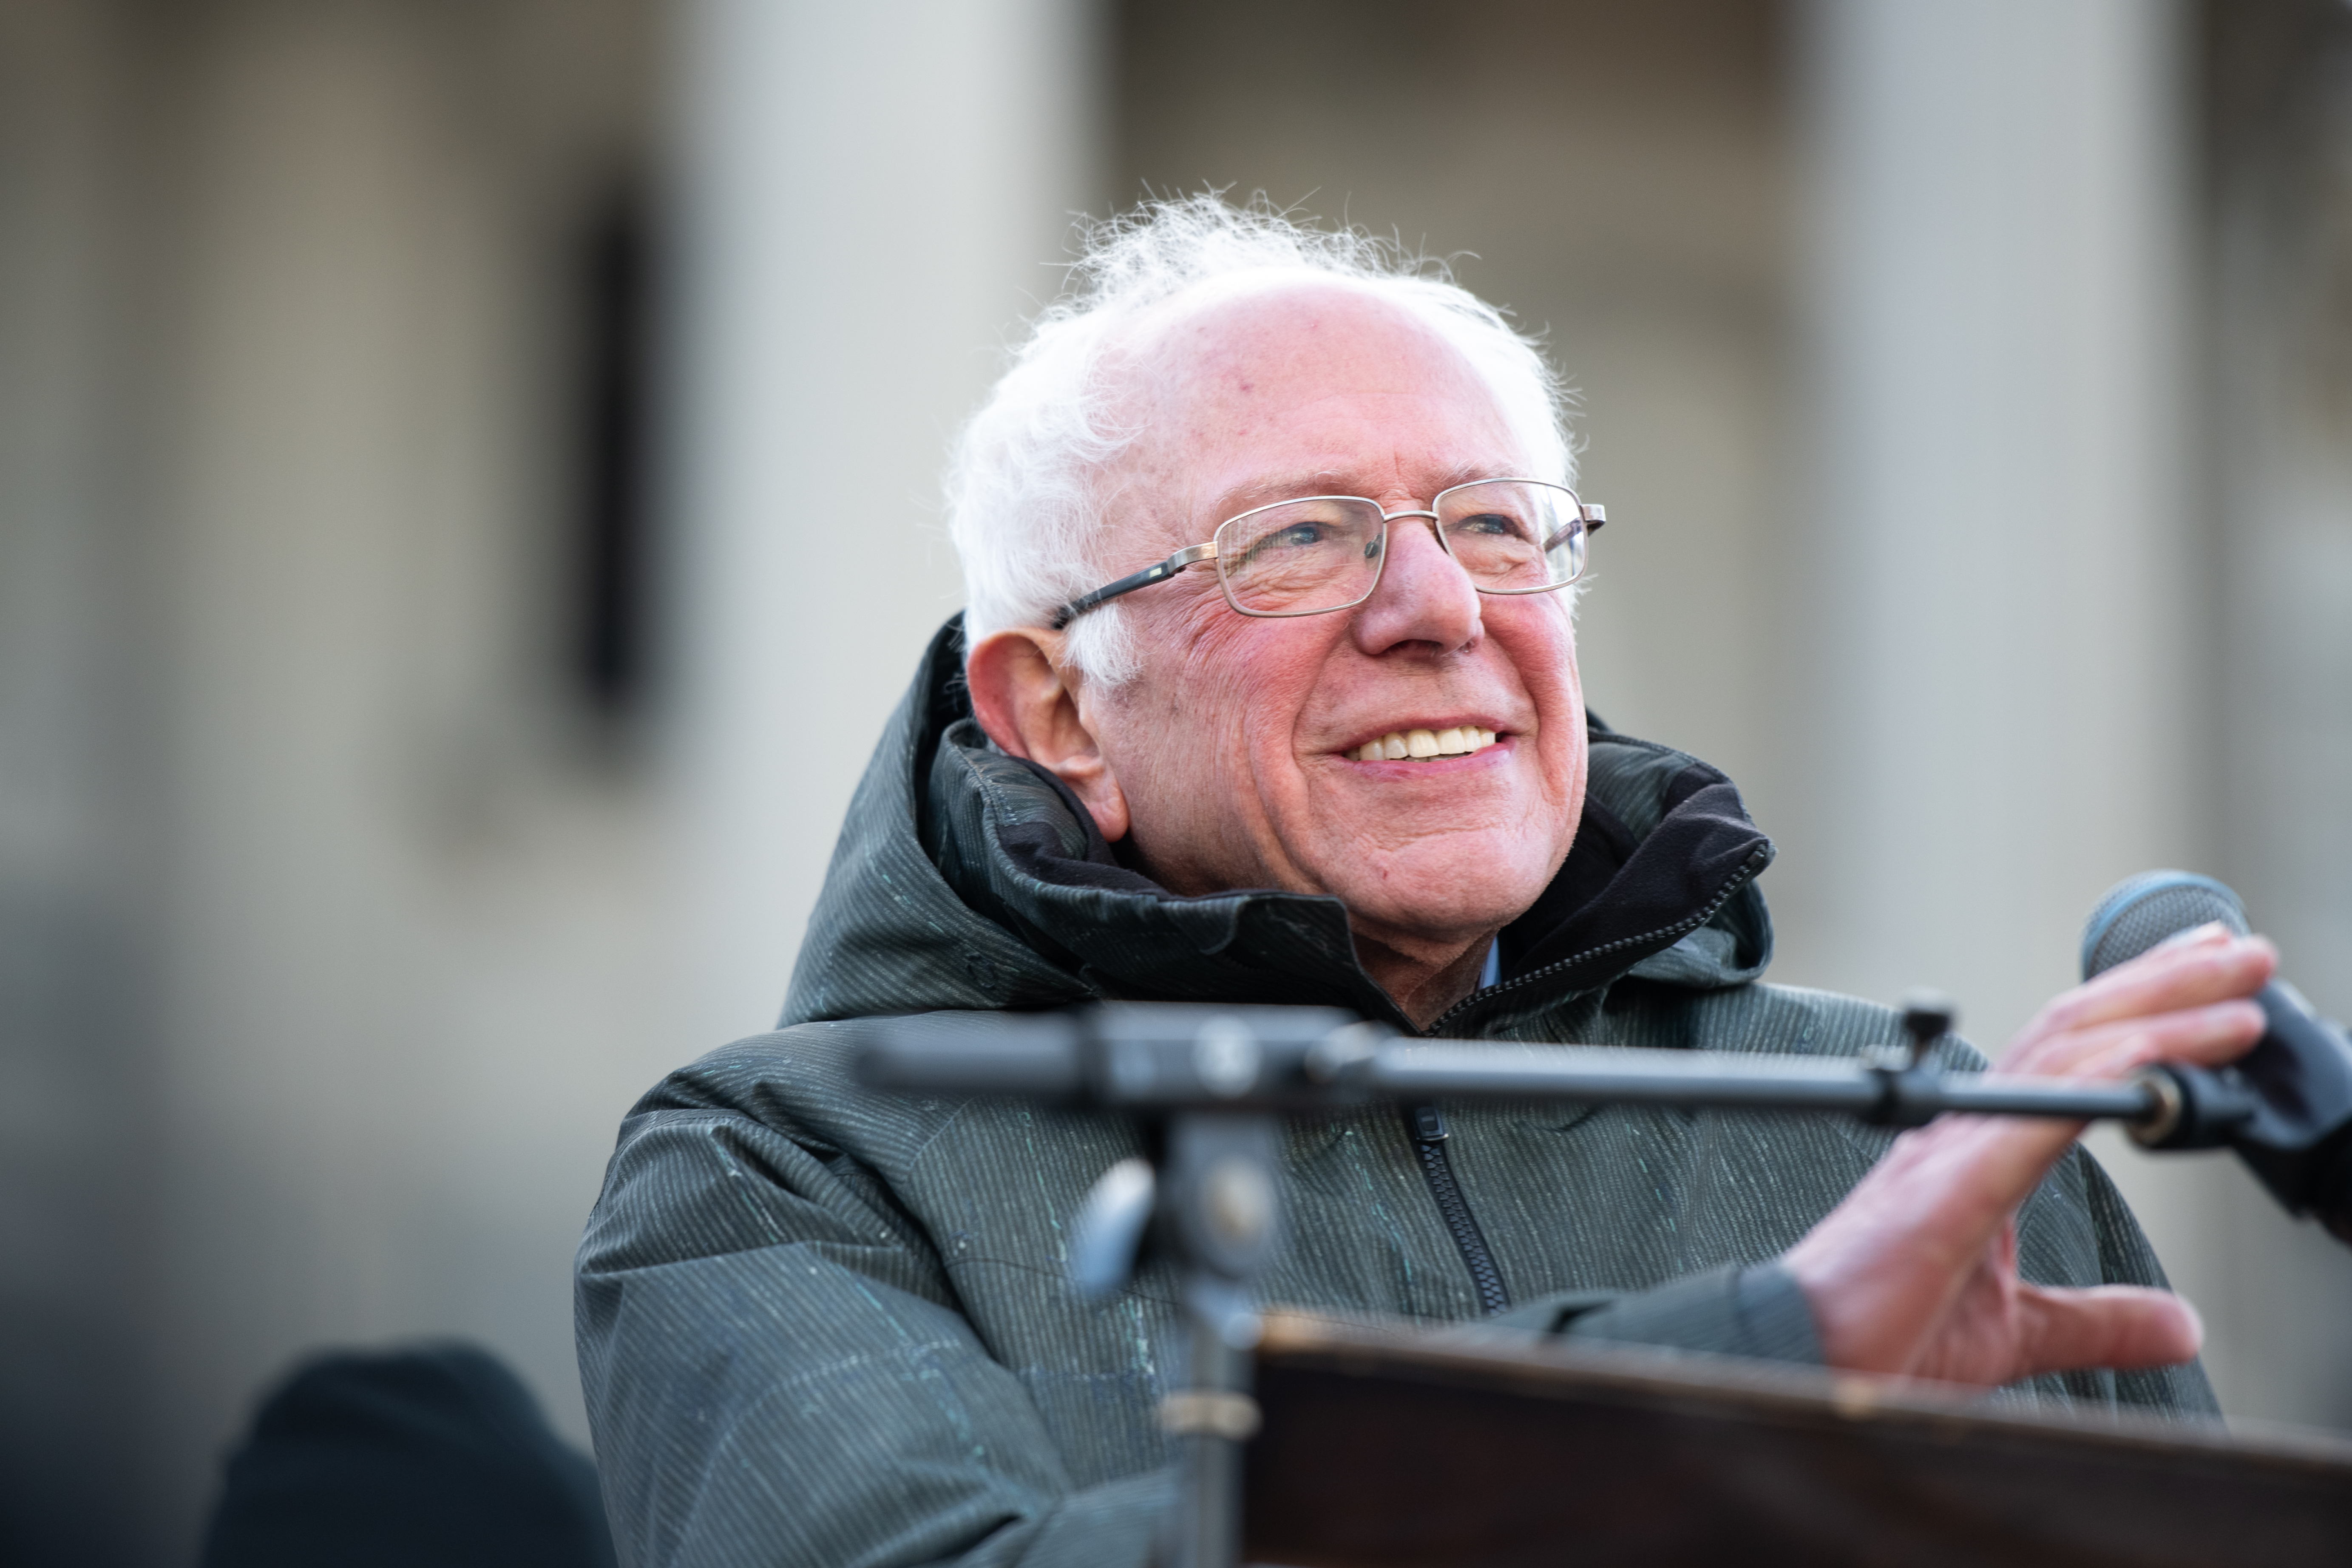 Sanders tops another poll just before the Iowa caucus